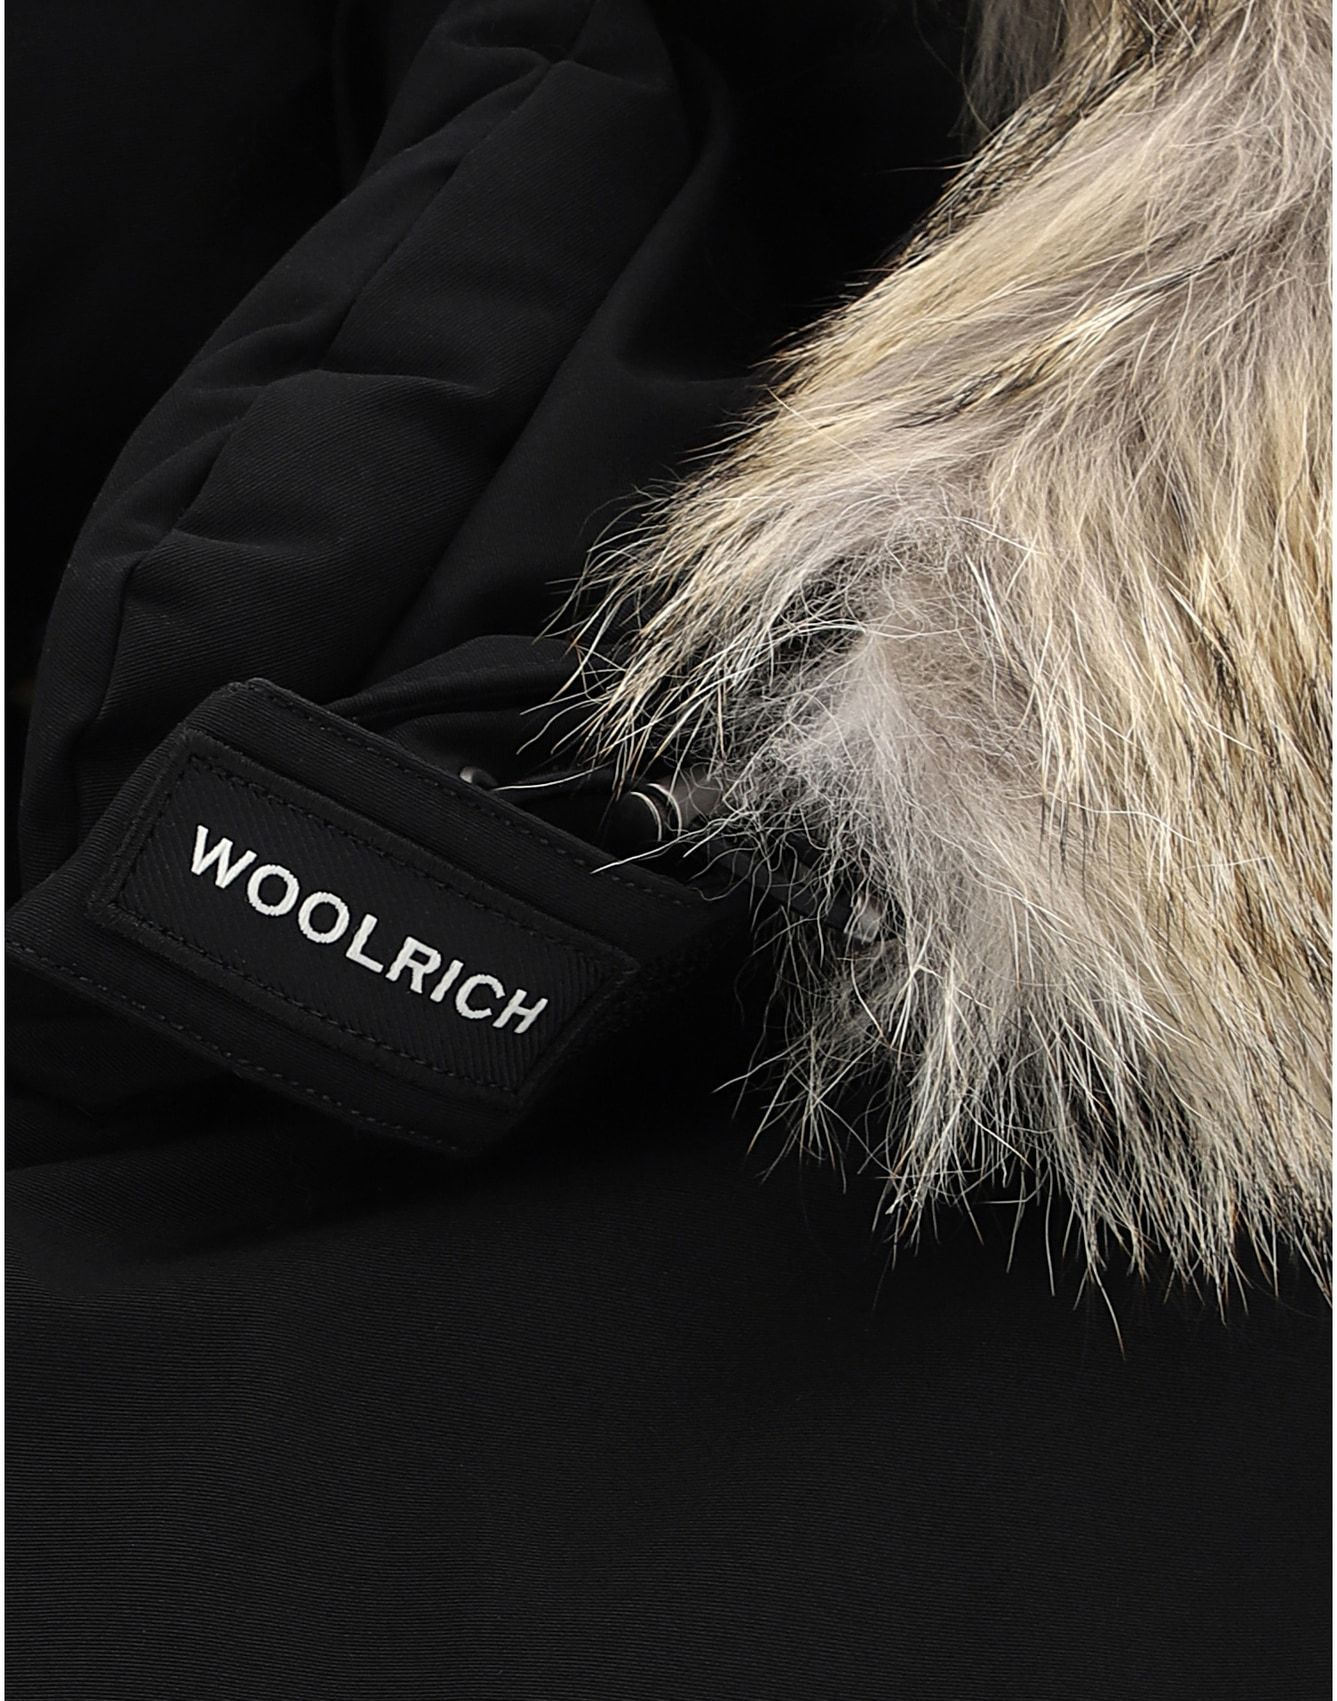 WOOLRICH MEN'S WOCPS2896UT0001BLK BLACK COTTON OUTERWEAR JACKET